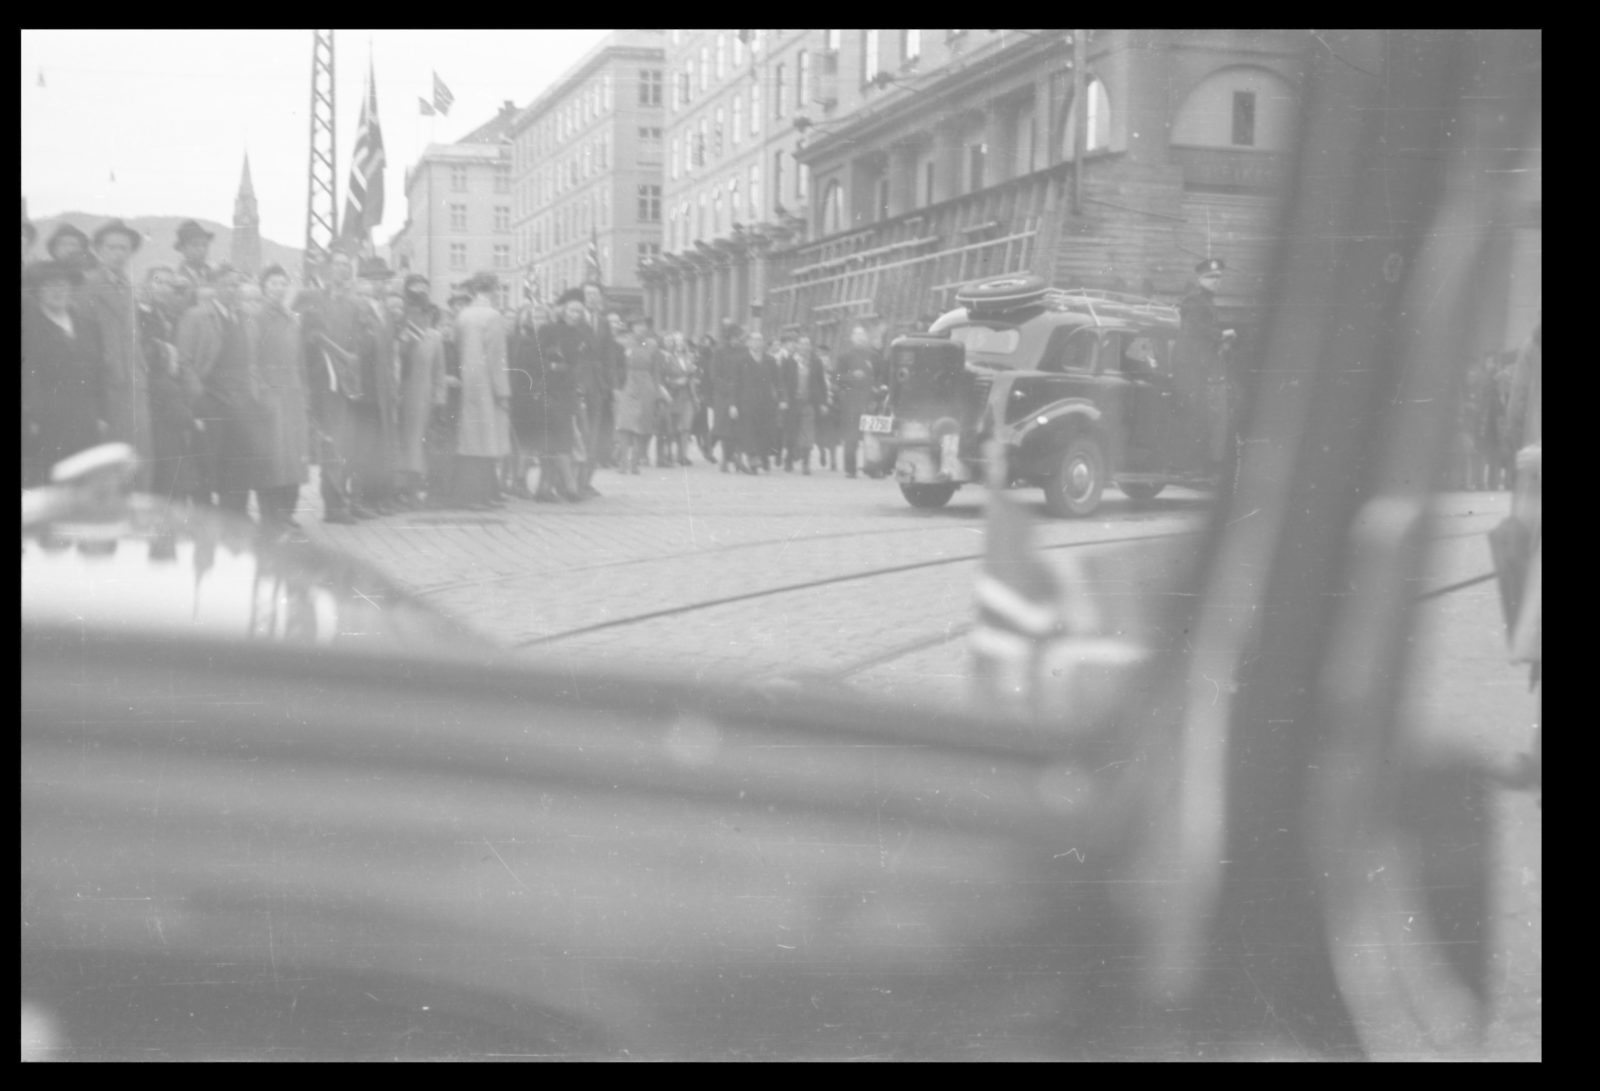 Colonel Trygve Sandvik with companions being transported into the city - 2